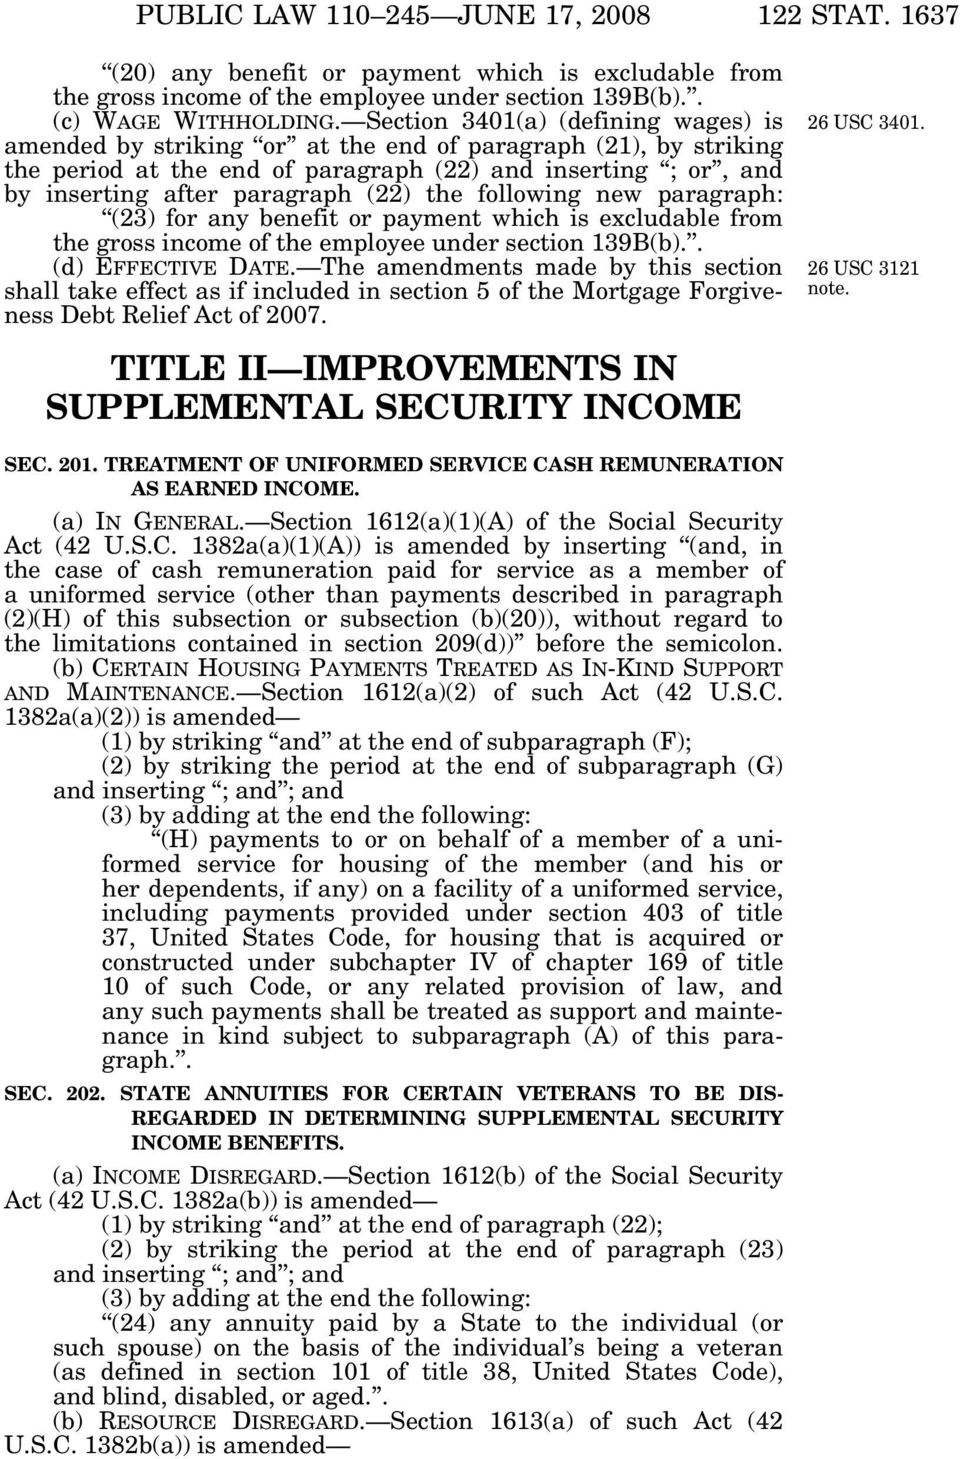 the following new paragraph: (23) for any benefit or payment which is excludable from the gross income of the employee under section 139B(b).. (d) EFFECTIVE DATE.